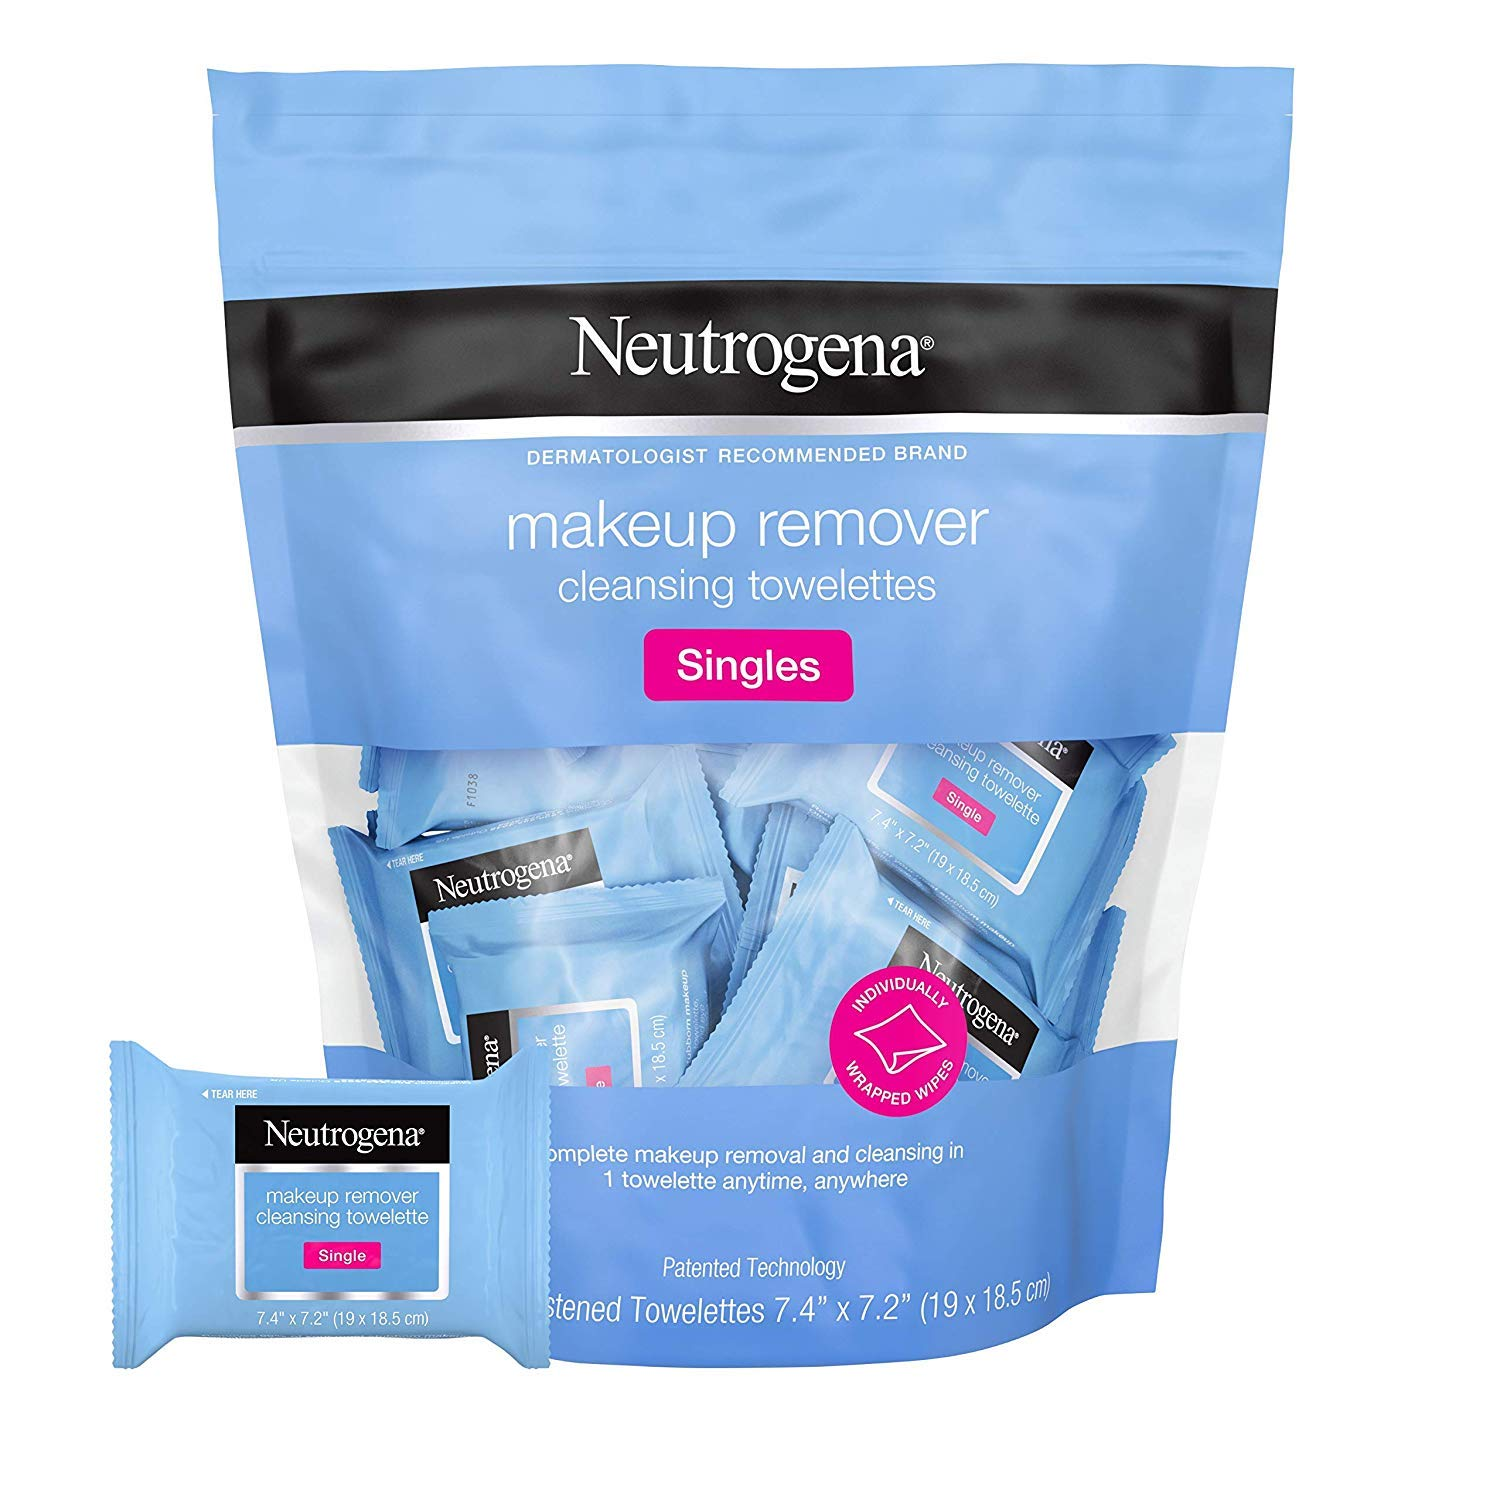 Neutrogena Makeup Remover Cleansing Towelette Singles, Daily Face Wipes to Remove Dirt, Oil, Makeup & Waterproof Mascara, Individually Wrapped, 20 ct (Pack of 2) by Neutrogena